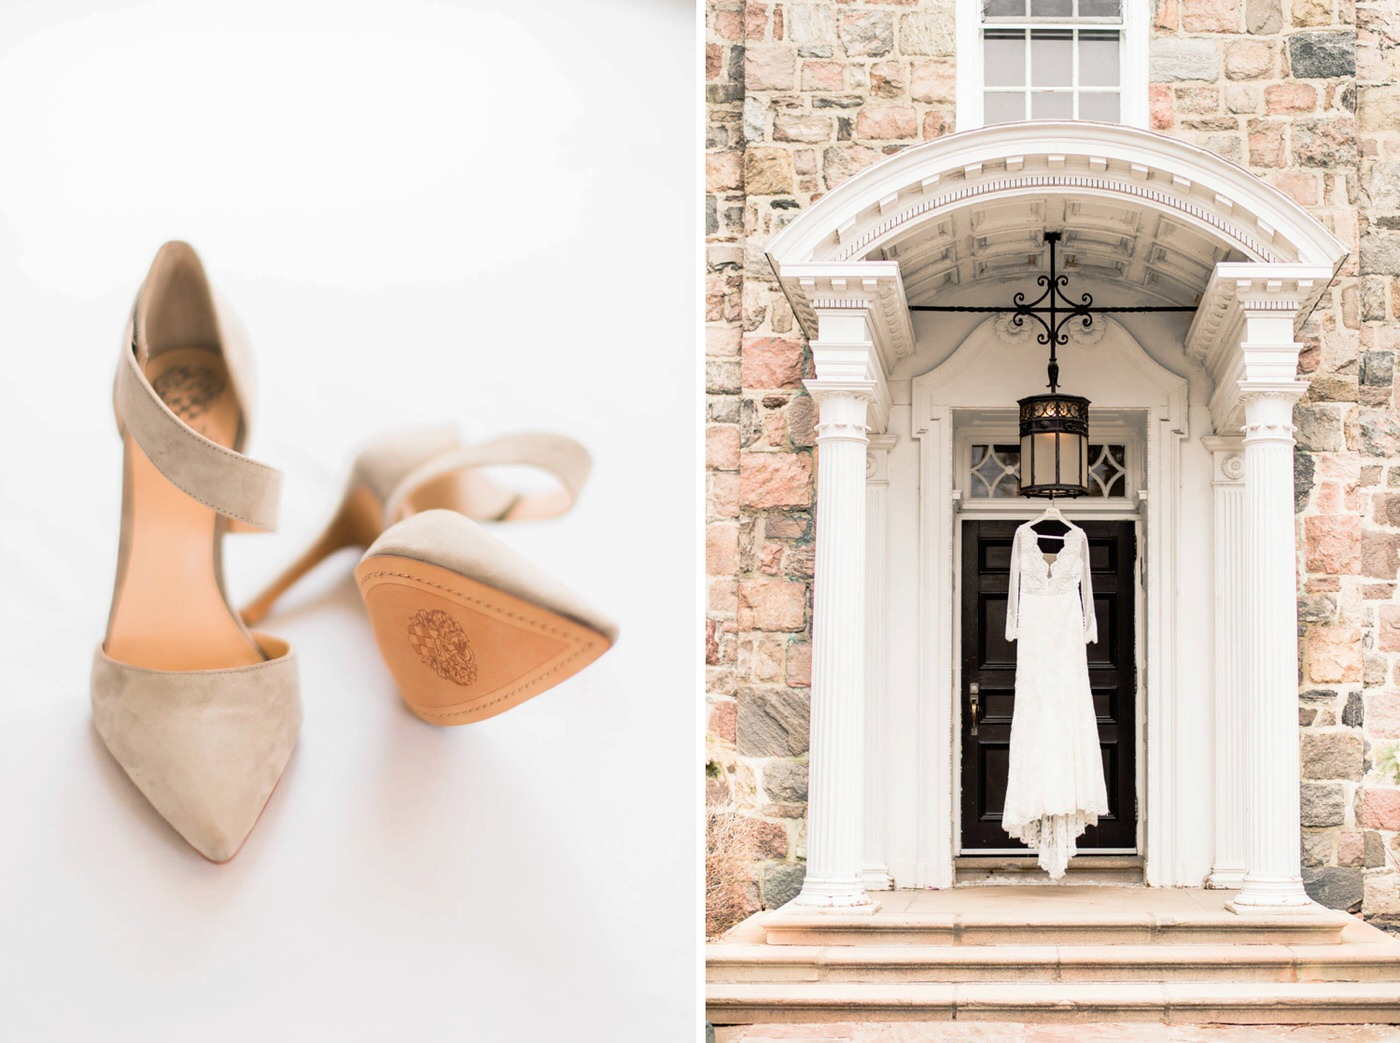 Styled wedding shoot at the Estates of Sunnybrook